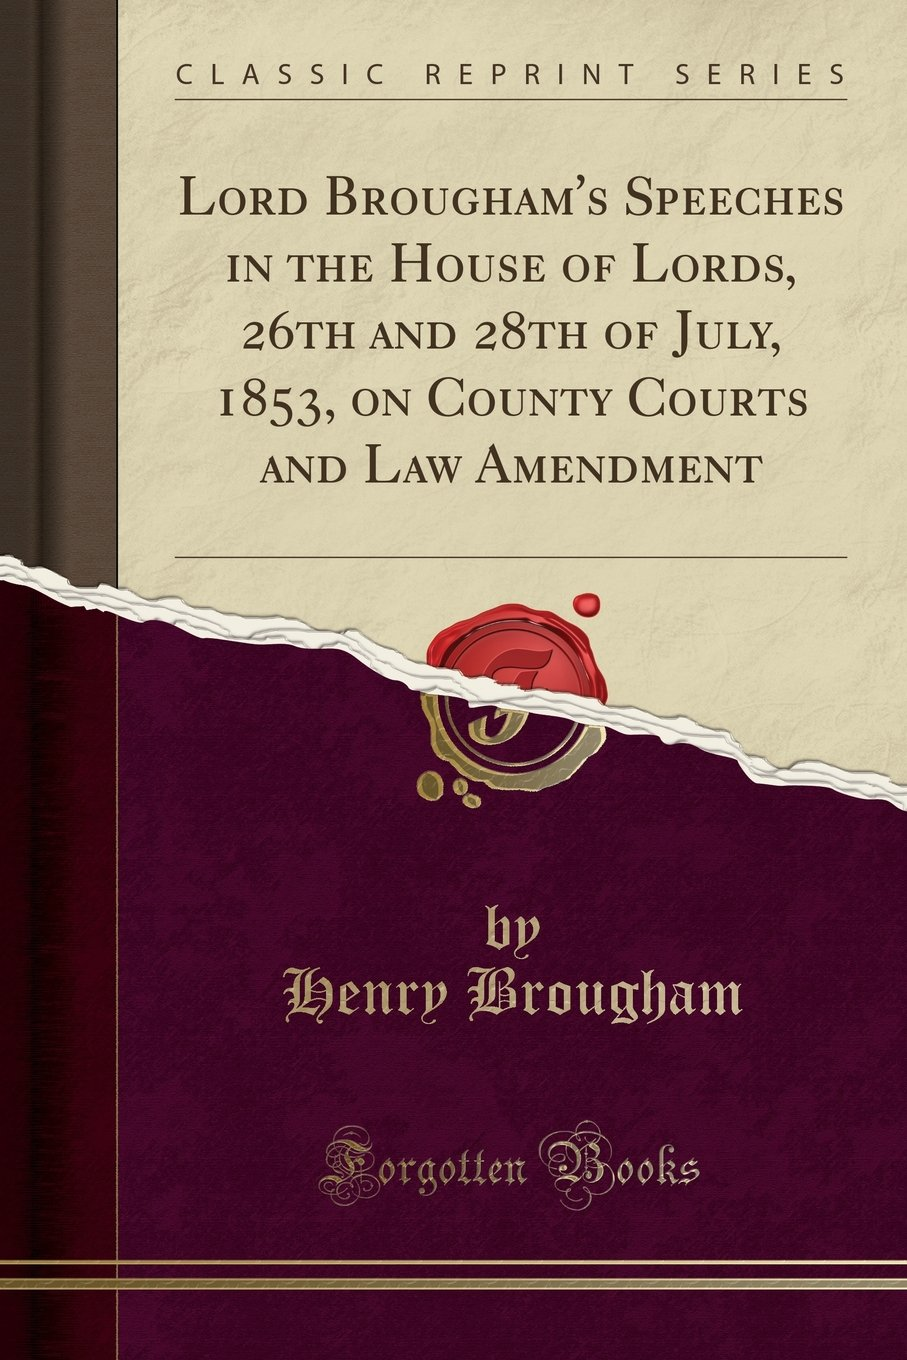 Lord Brougham's Speeches in the House of Lords, 26th and 28th of July, 1853, on County Courts and Law Amendment (Classic Reprint) ebook